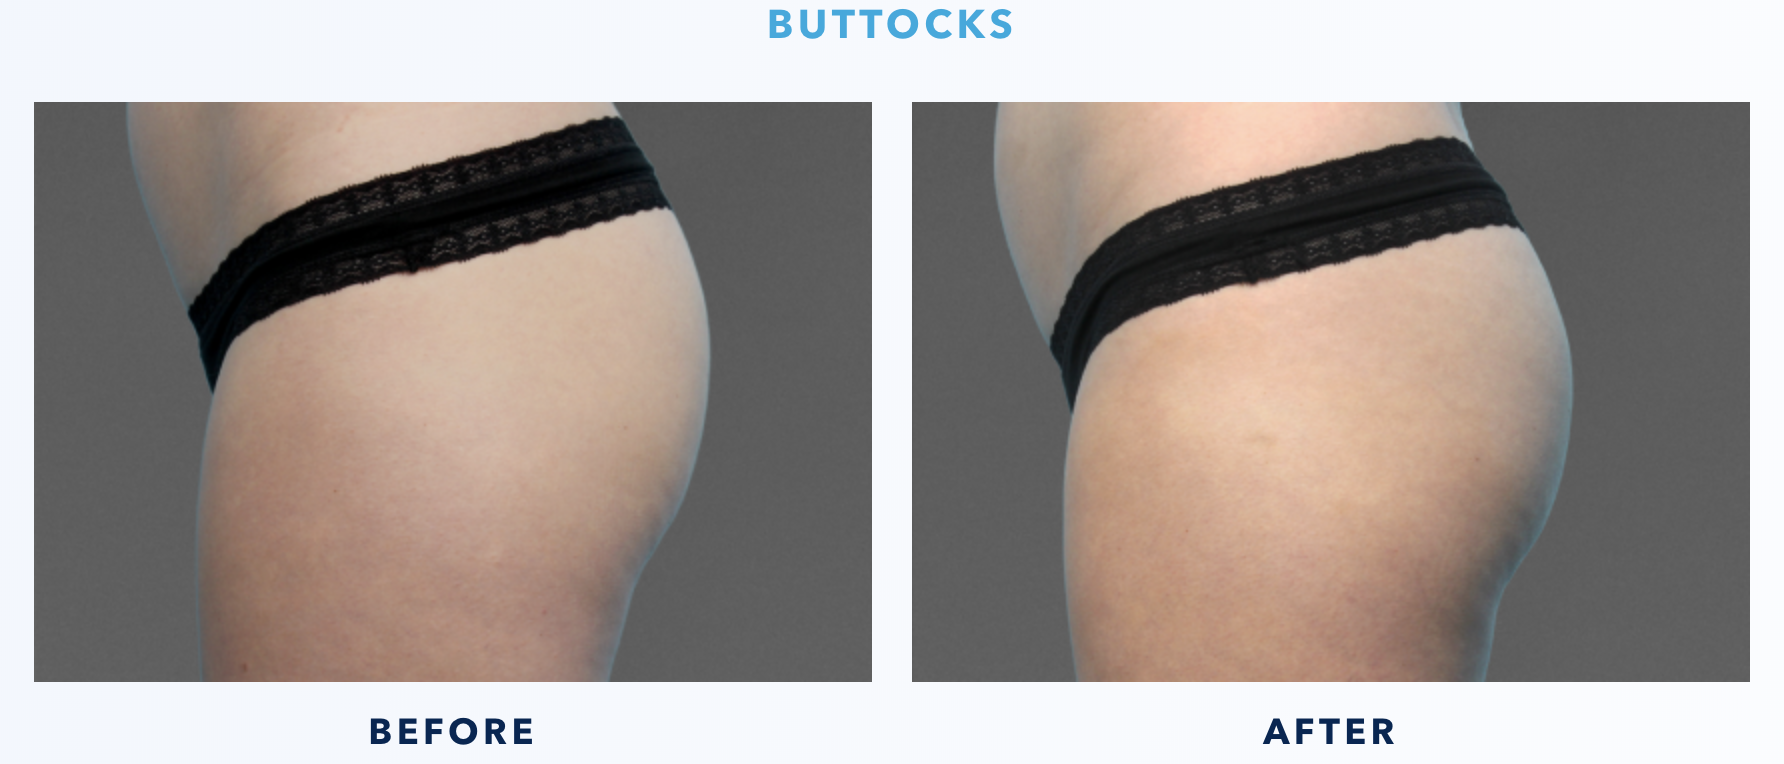 CoolTone Before & After Buttocks 1-1